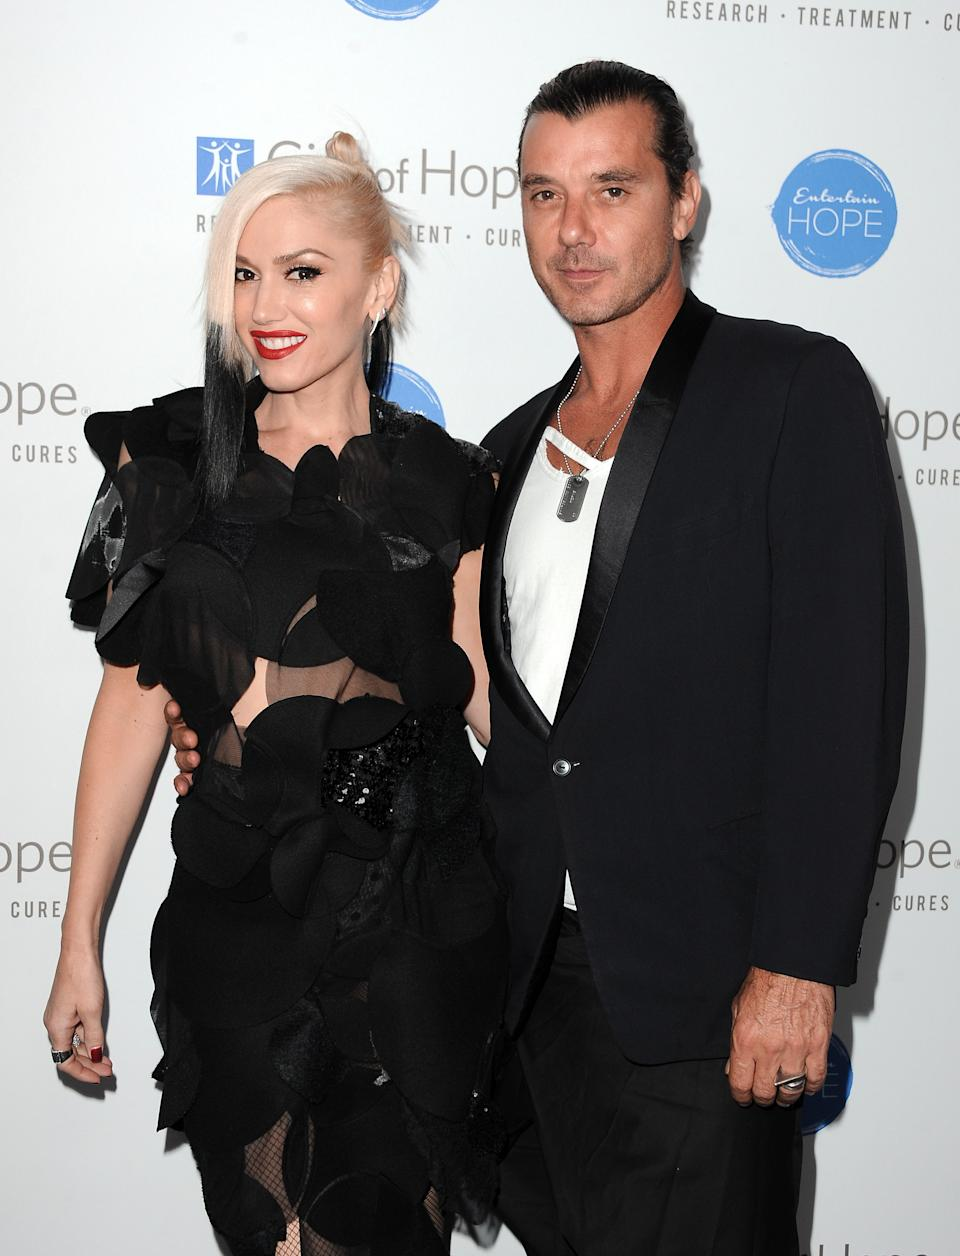 Gwen Stefani and Gavin Rossdale attend the City of Hope Spirit of Life Gala honouring Apple's Eddy Cue at the Pacific Design Center on October 23, 2014 in West Hollywood, California. (Photo by Angela Weiss/Getty Images for City Of Hope)